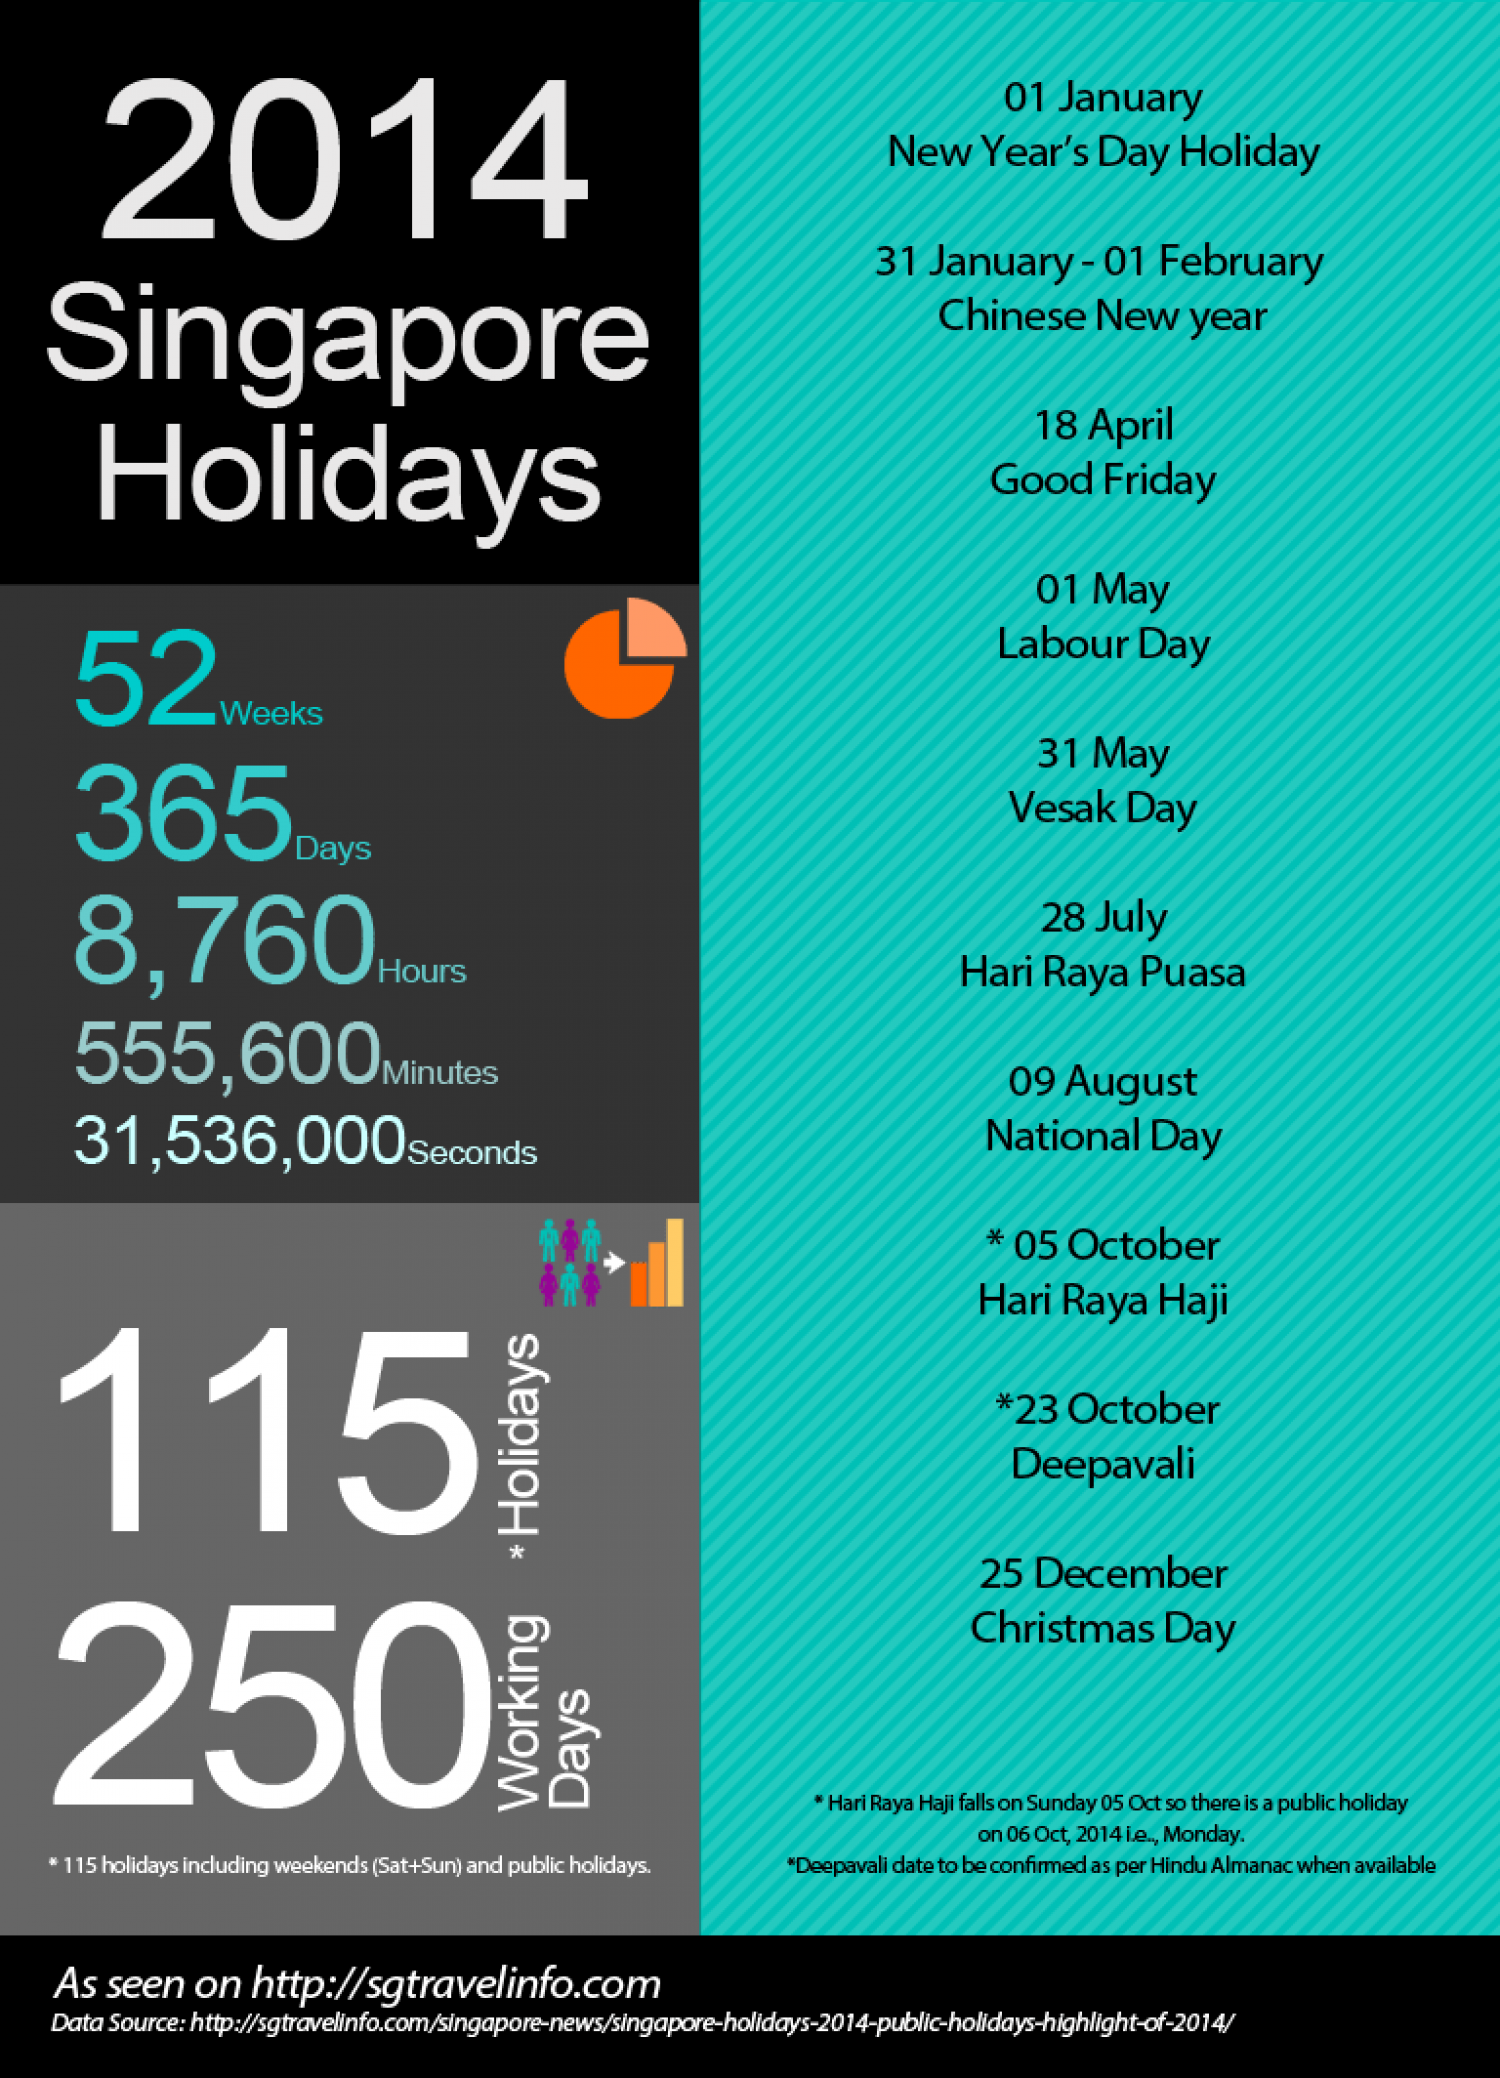 2014 Public Holidays in Singapore Infographic